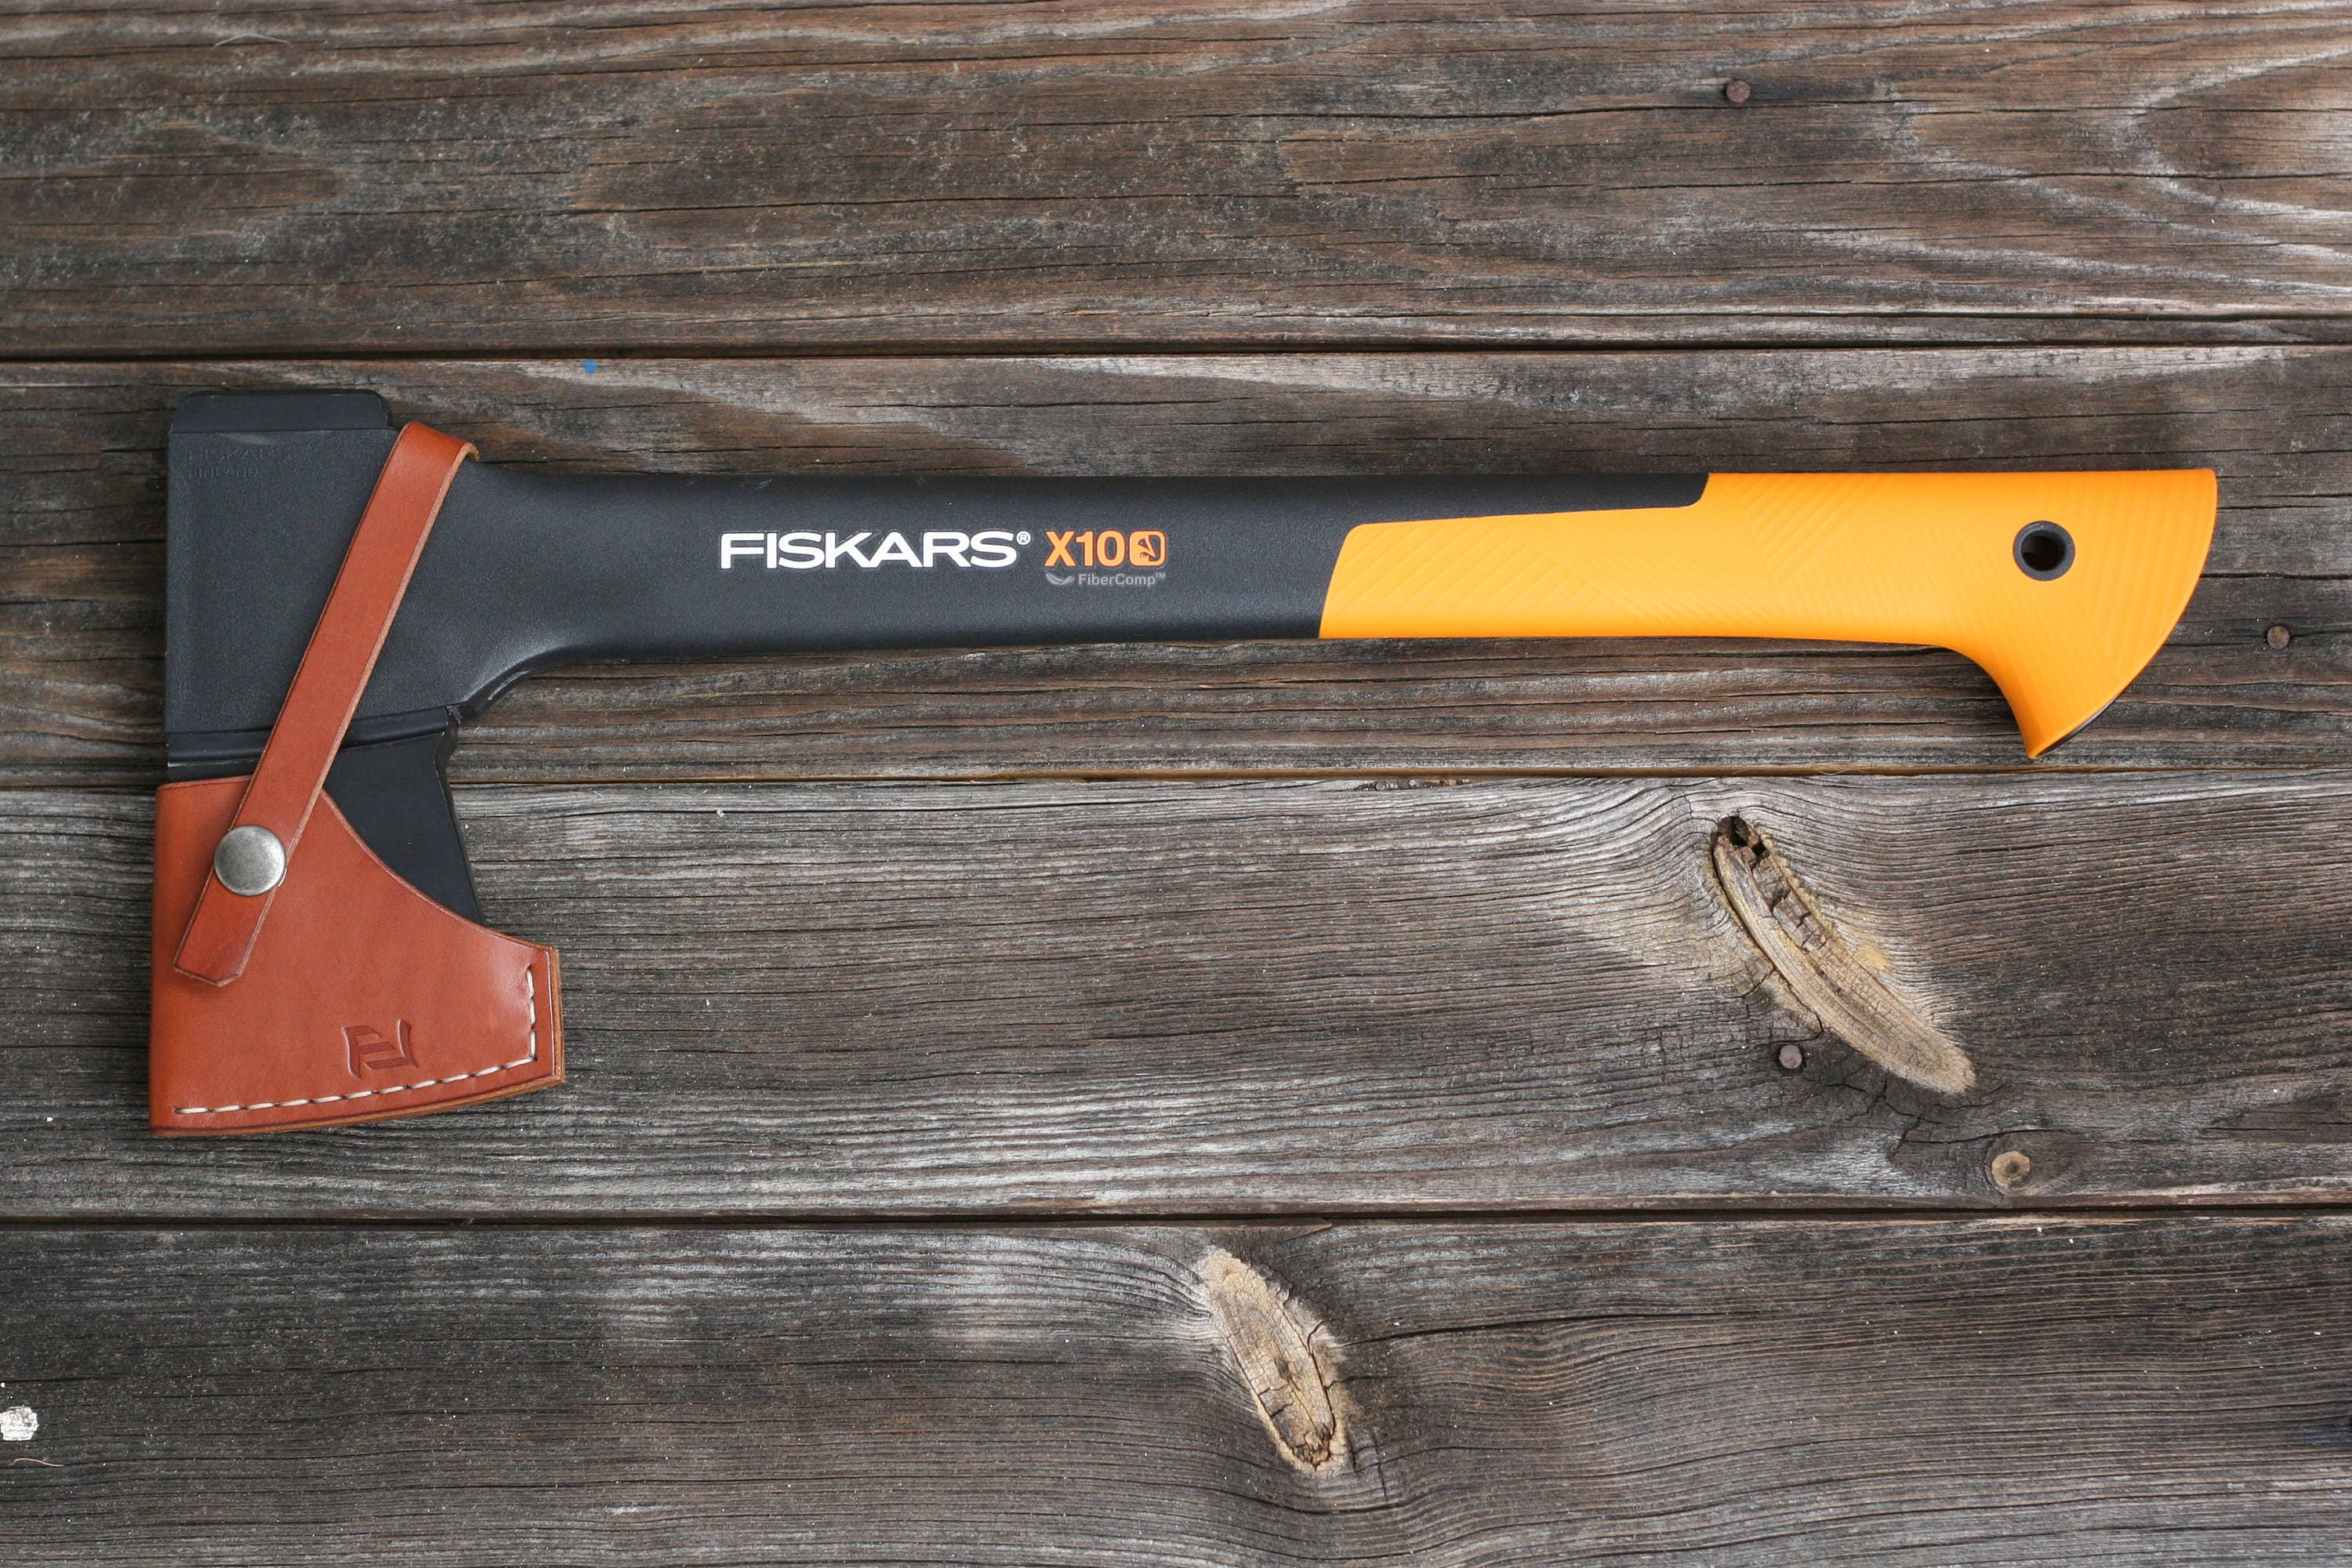 fiskars chopping axe x10 leather sheath from petkoleathers on etsy studio. Black Bedroom Furniture Sets. Home Design Ideas